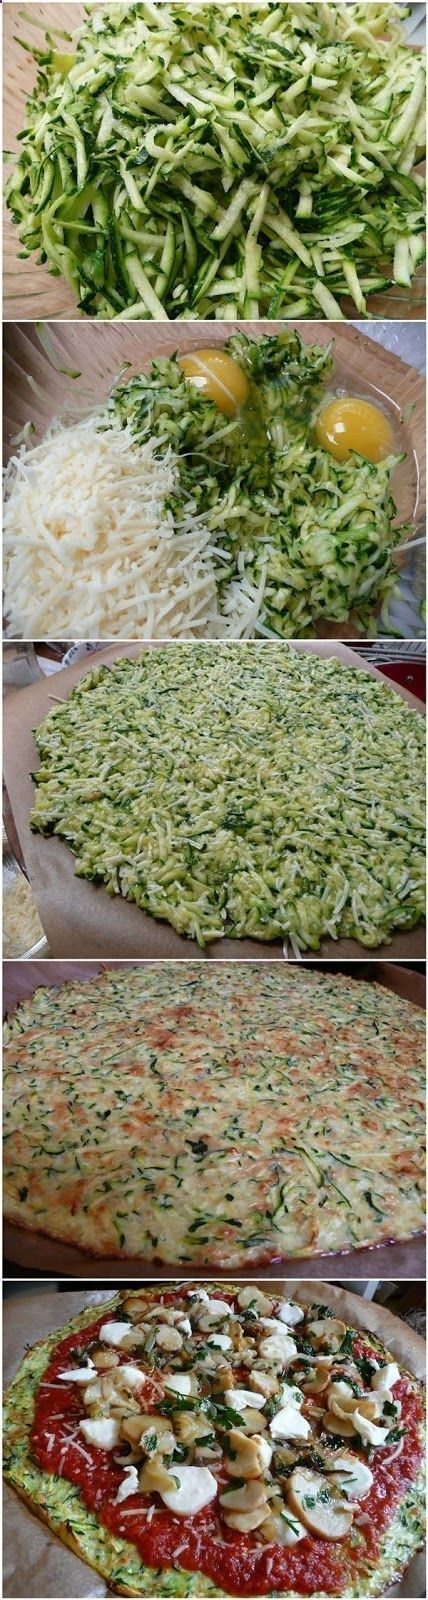 Zucchini Crust Pizza - I made this and IT WAS FANTASTIC! 2 zucchinis per crust, I added Italian seasonings and garlic along w cheese and 2 eggs. Baked it 30 minutes, till it was lightly brown on top. Out of the oven, put the meat and veggies directly on top of crust then layer the sauce (keeping the sauce off the crust), then cheese. Bake until toppings are melted. Good stuff. You won't miss the carbs!